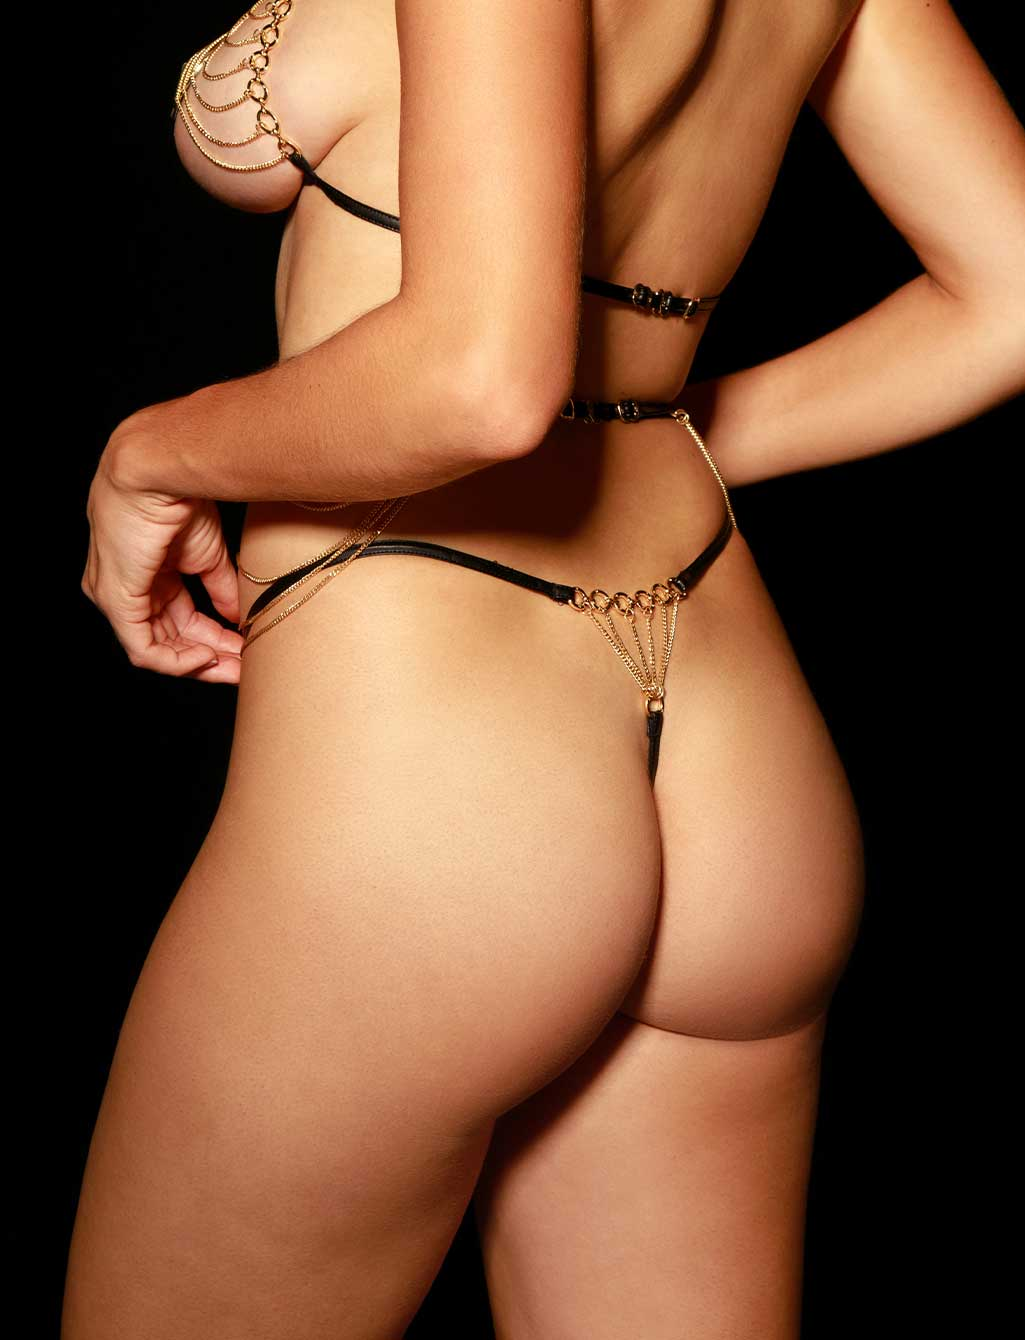 Ariana Gold Bodychain Thong G string | Shop Honey Birdette